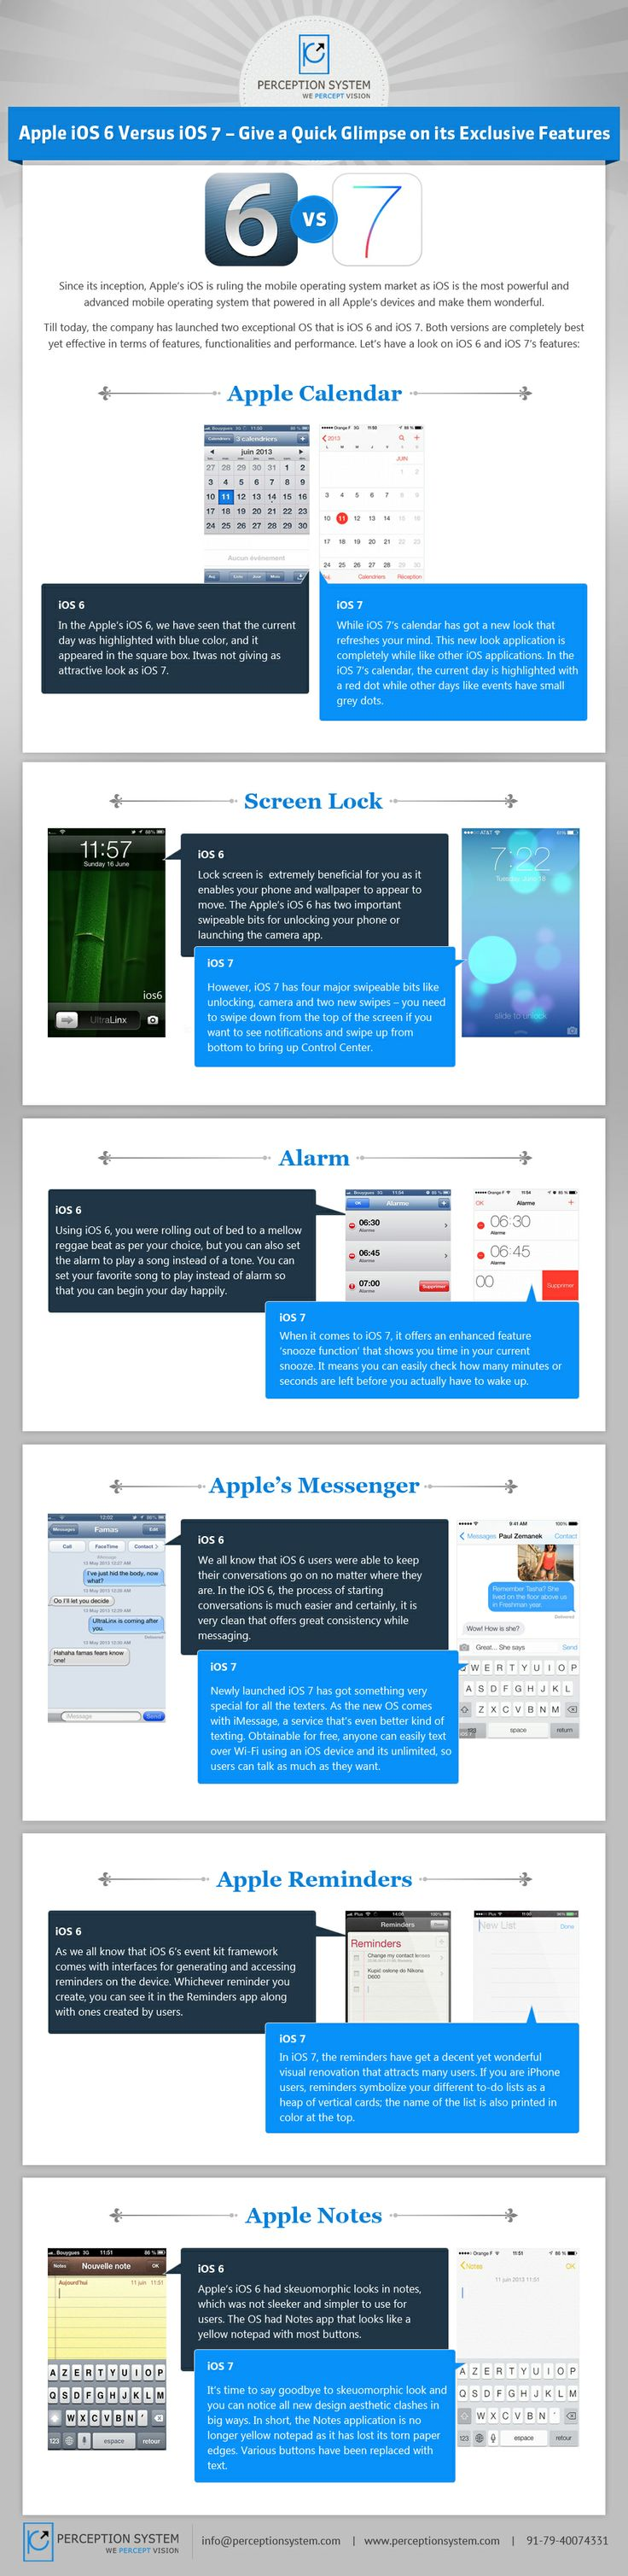 Apple's iOS 6 Vs iOS 7 Give A Quick Glimpse On Its Exclusive Features  #Infographic #Technology #iOS6 #iOS7